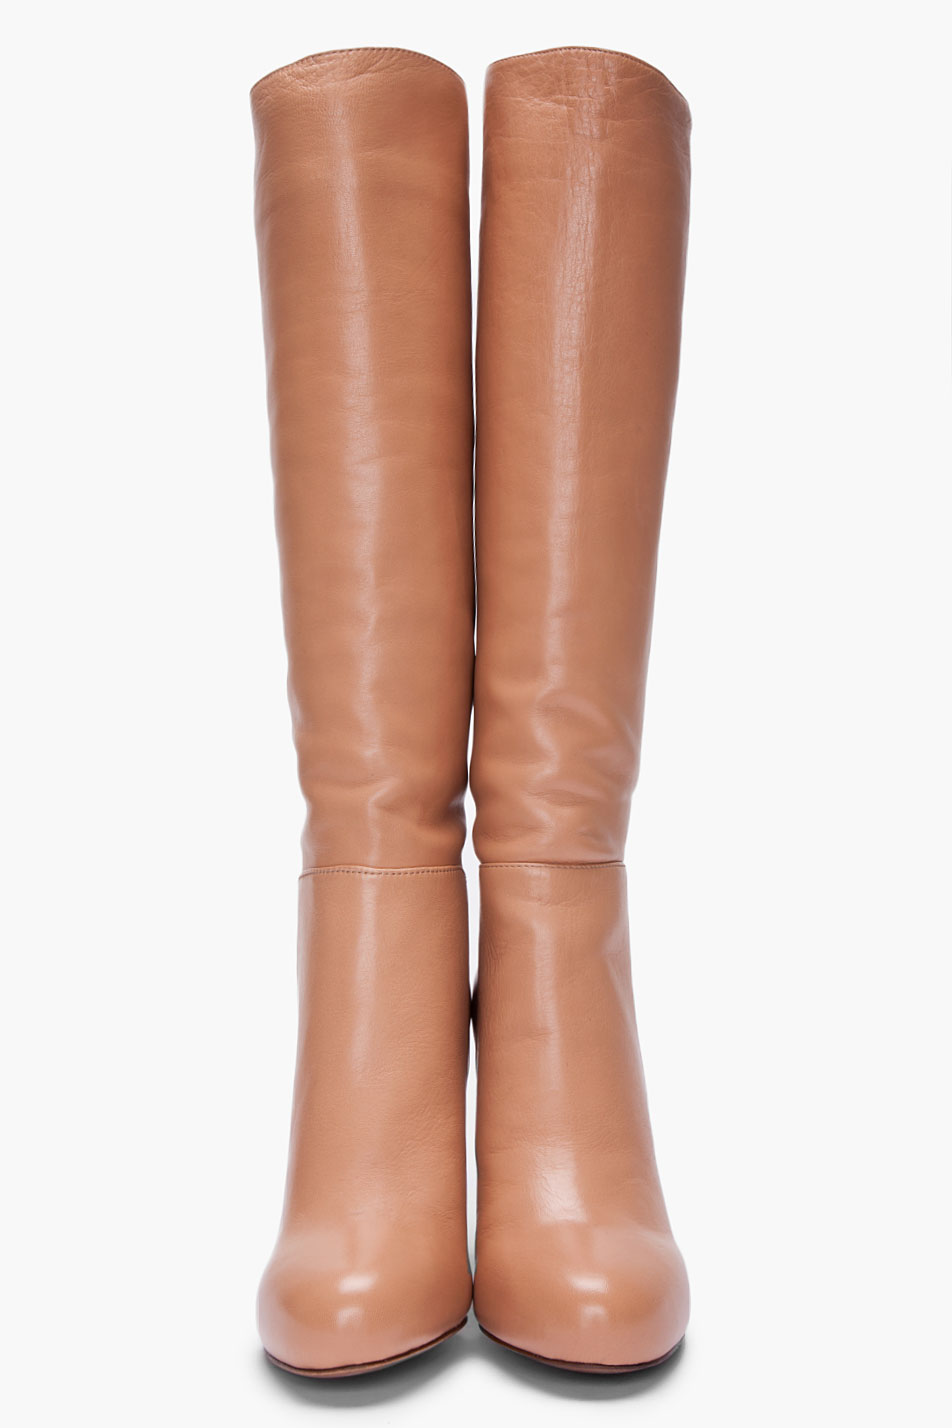 See by chloé Beige Kneehigh Boots in Natural | Lyst